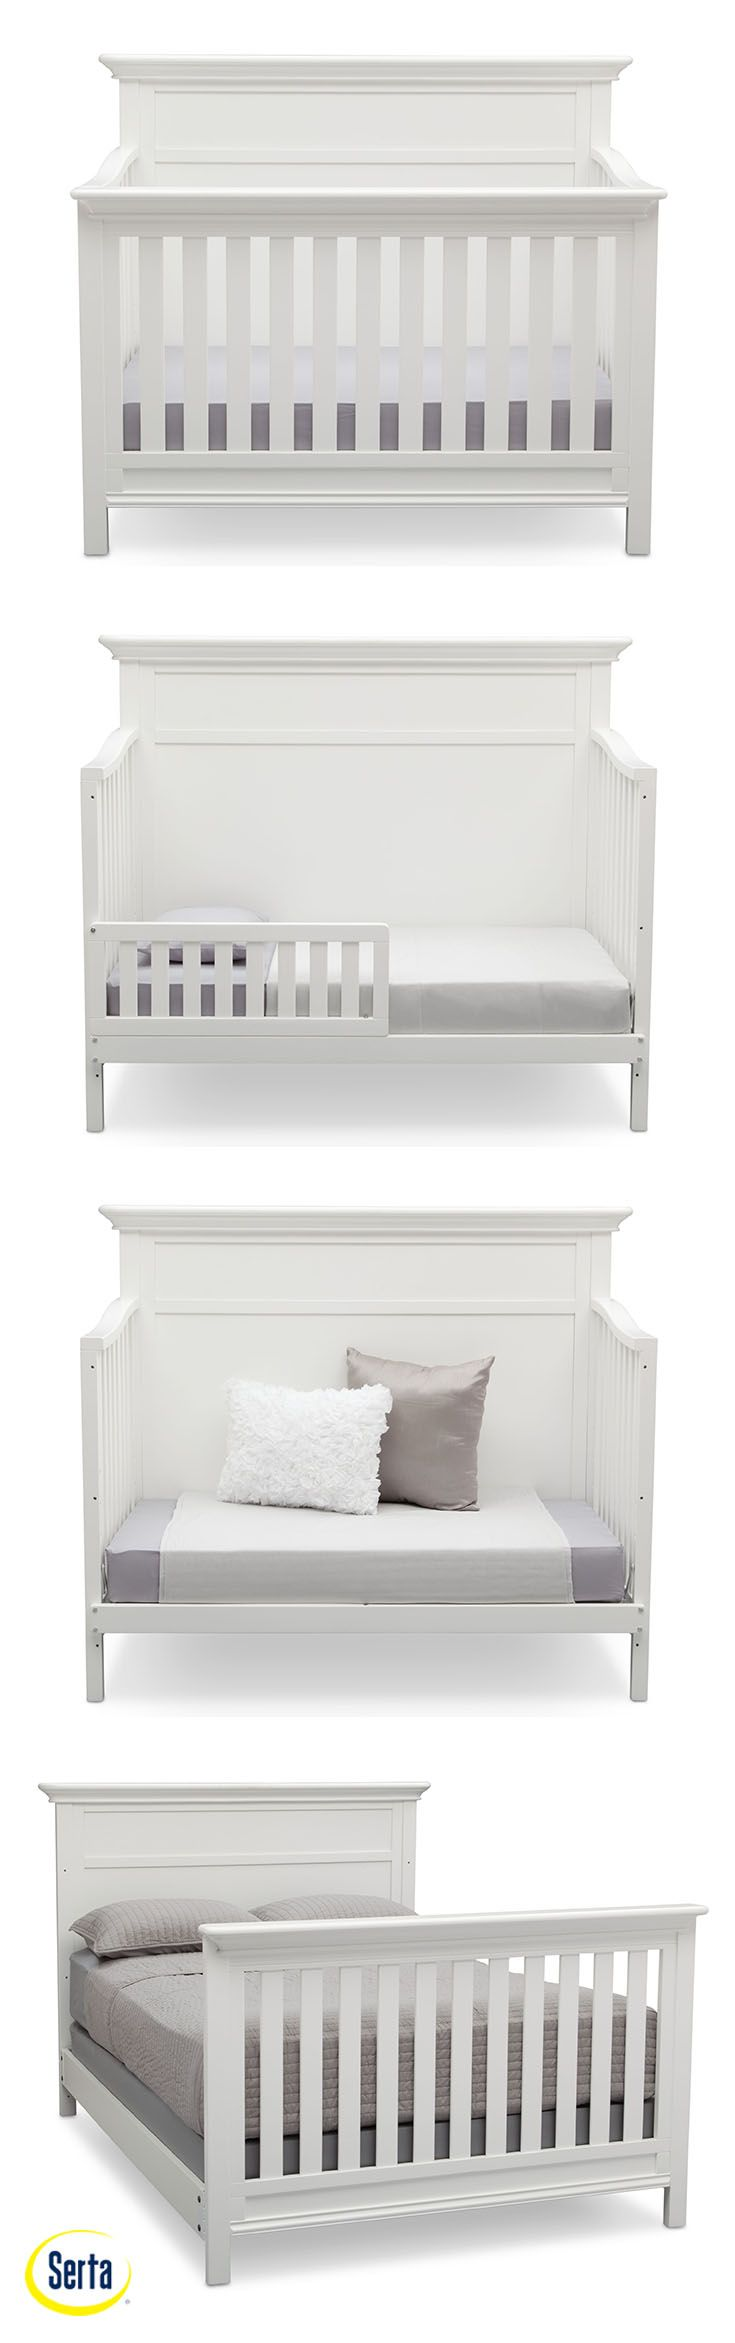 With gorgeous molding and rich detailing, the Fairmount 4-in-1 Crib from Serta in Bianca has the appearance and construction of heirloom furniture for everlasting style. This convertible crib features four mattress heights that allow you to lower it as yo